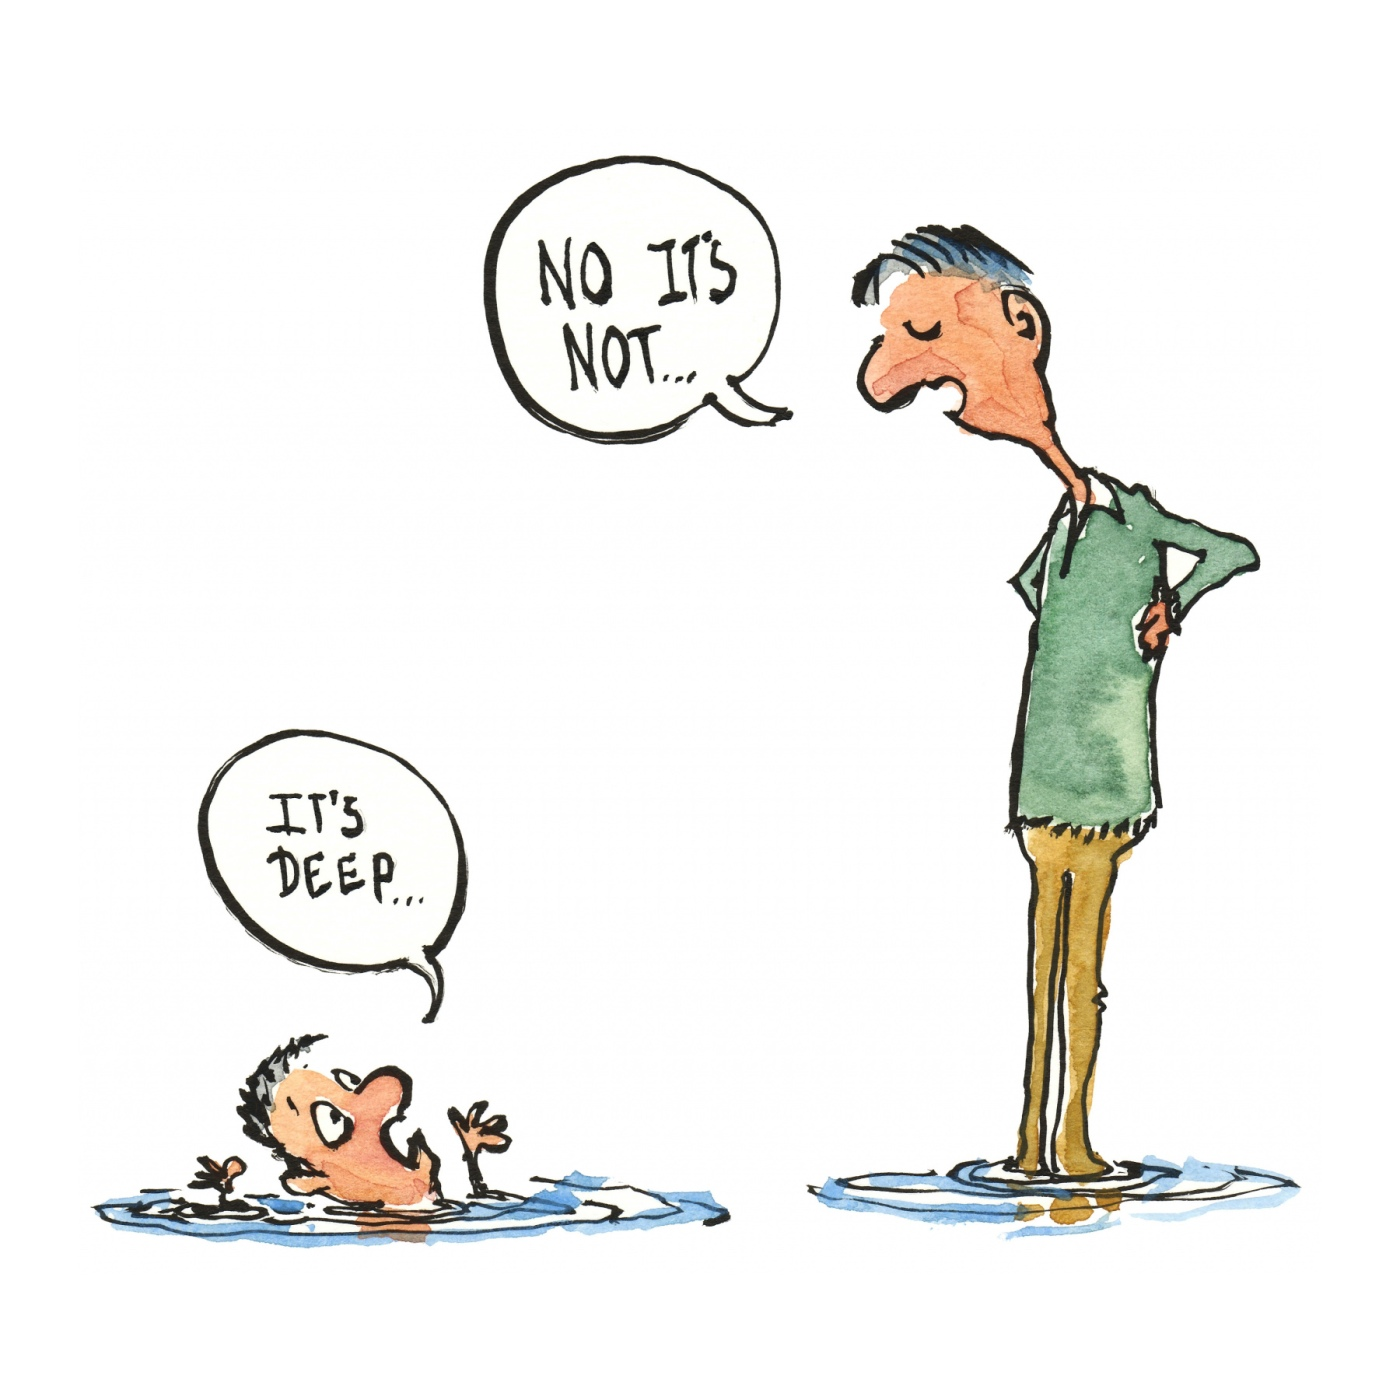 drawing of two men in water, one says it's deep, the other man says it is not. Illustration by Frits Ahlefeldt